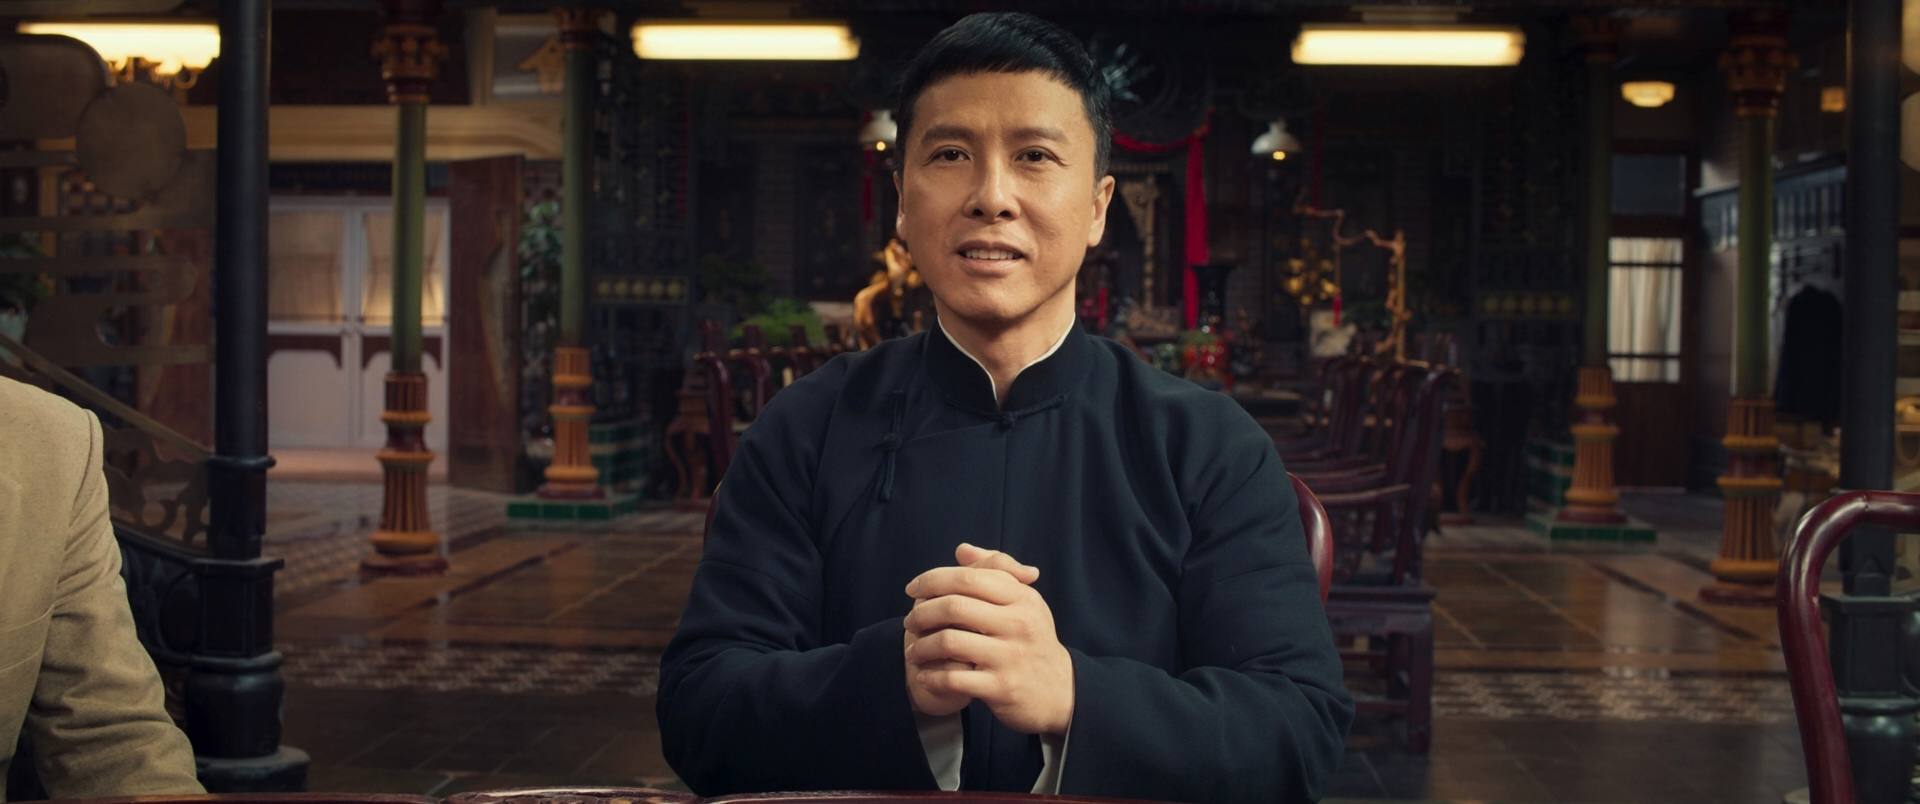 Ip Man 4: El final (2019) 1080p BDRip Castellano - Ingles